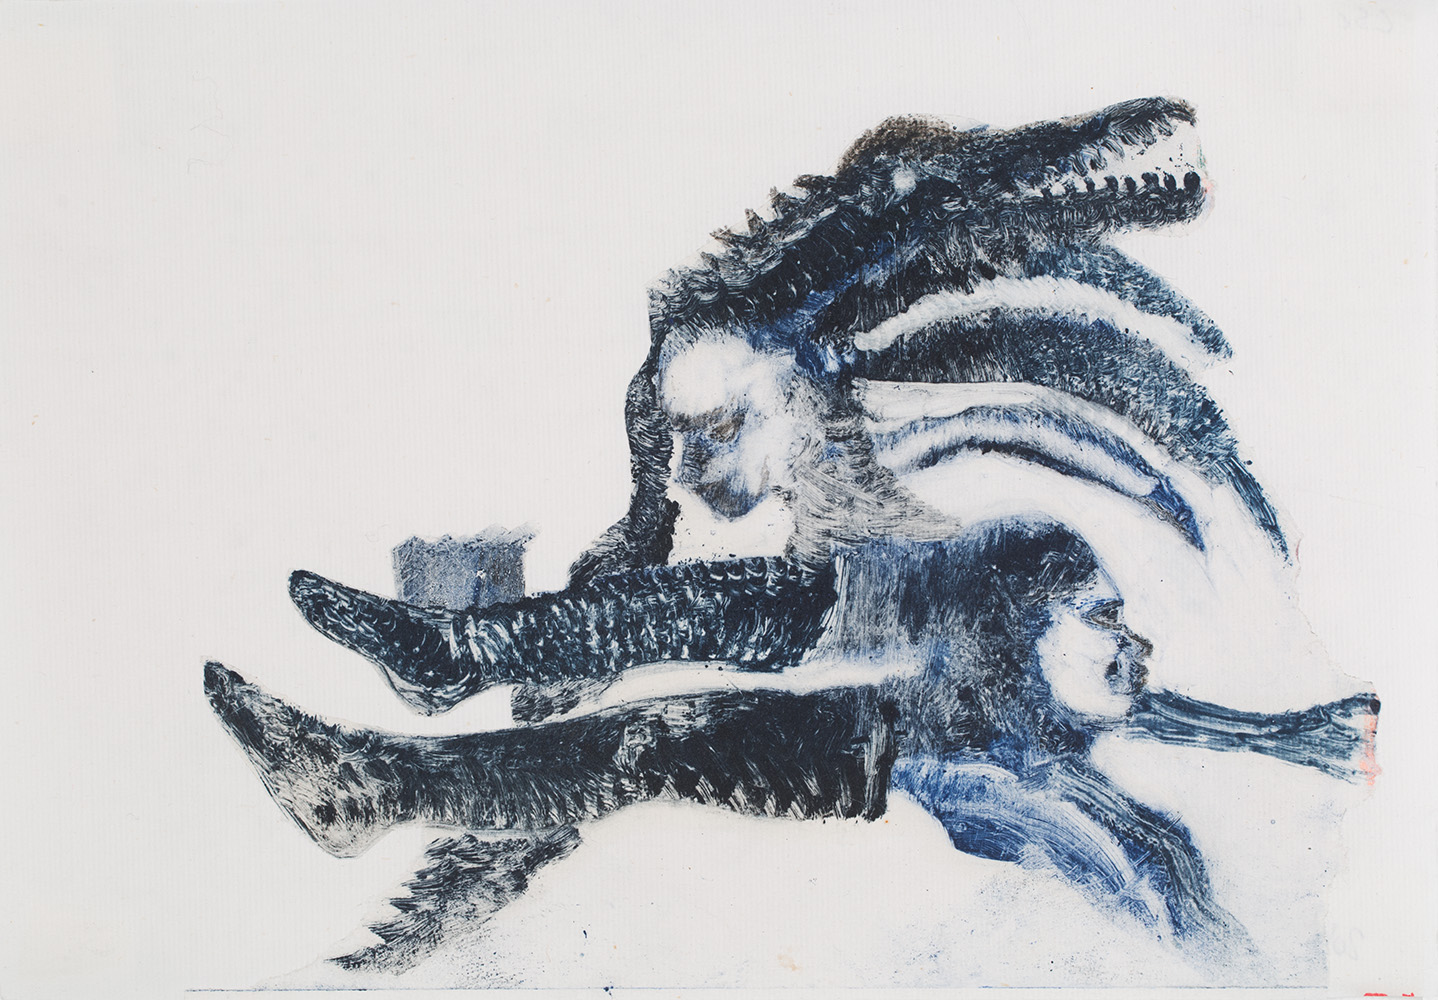 Christine Sefolosha, Boots, 2018, Oil monotype / Chine collé, 8.25 x 11.5 inches, 21 x 29.2 cm, CSe